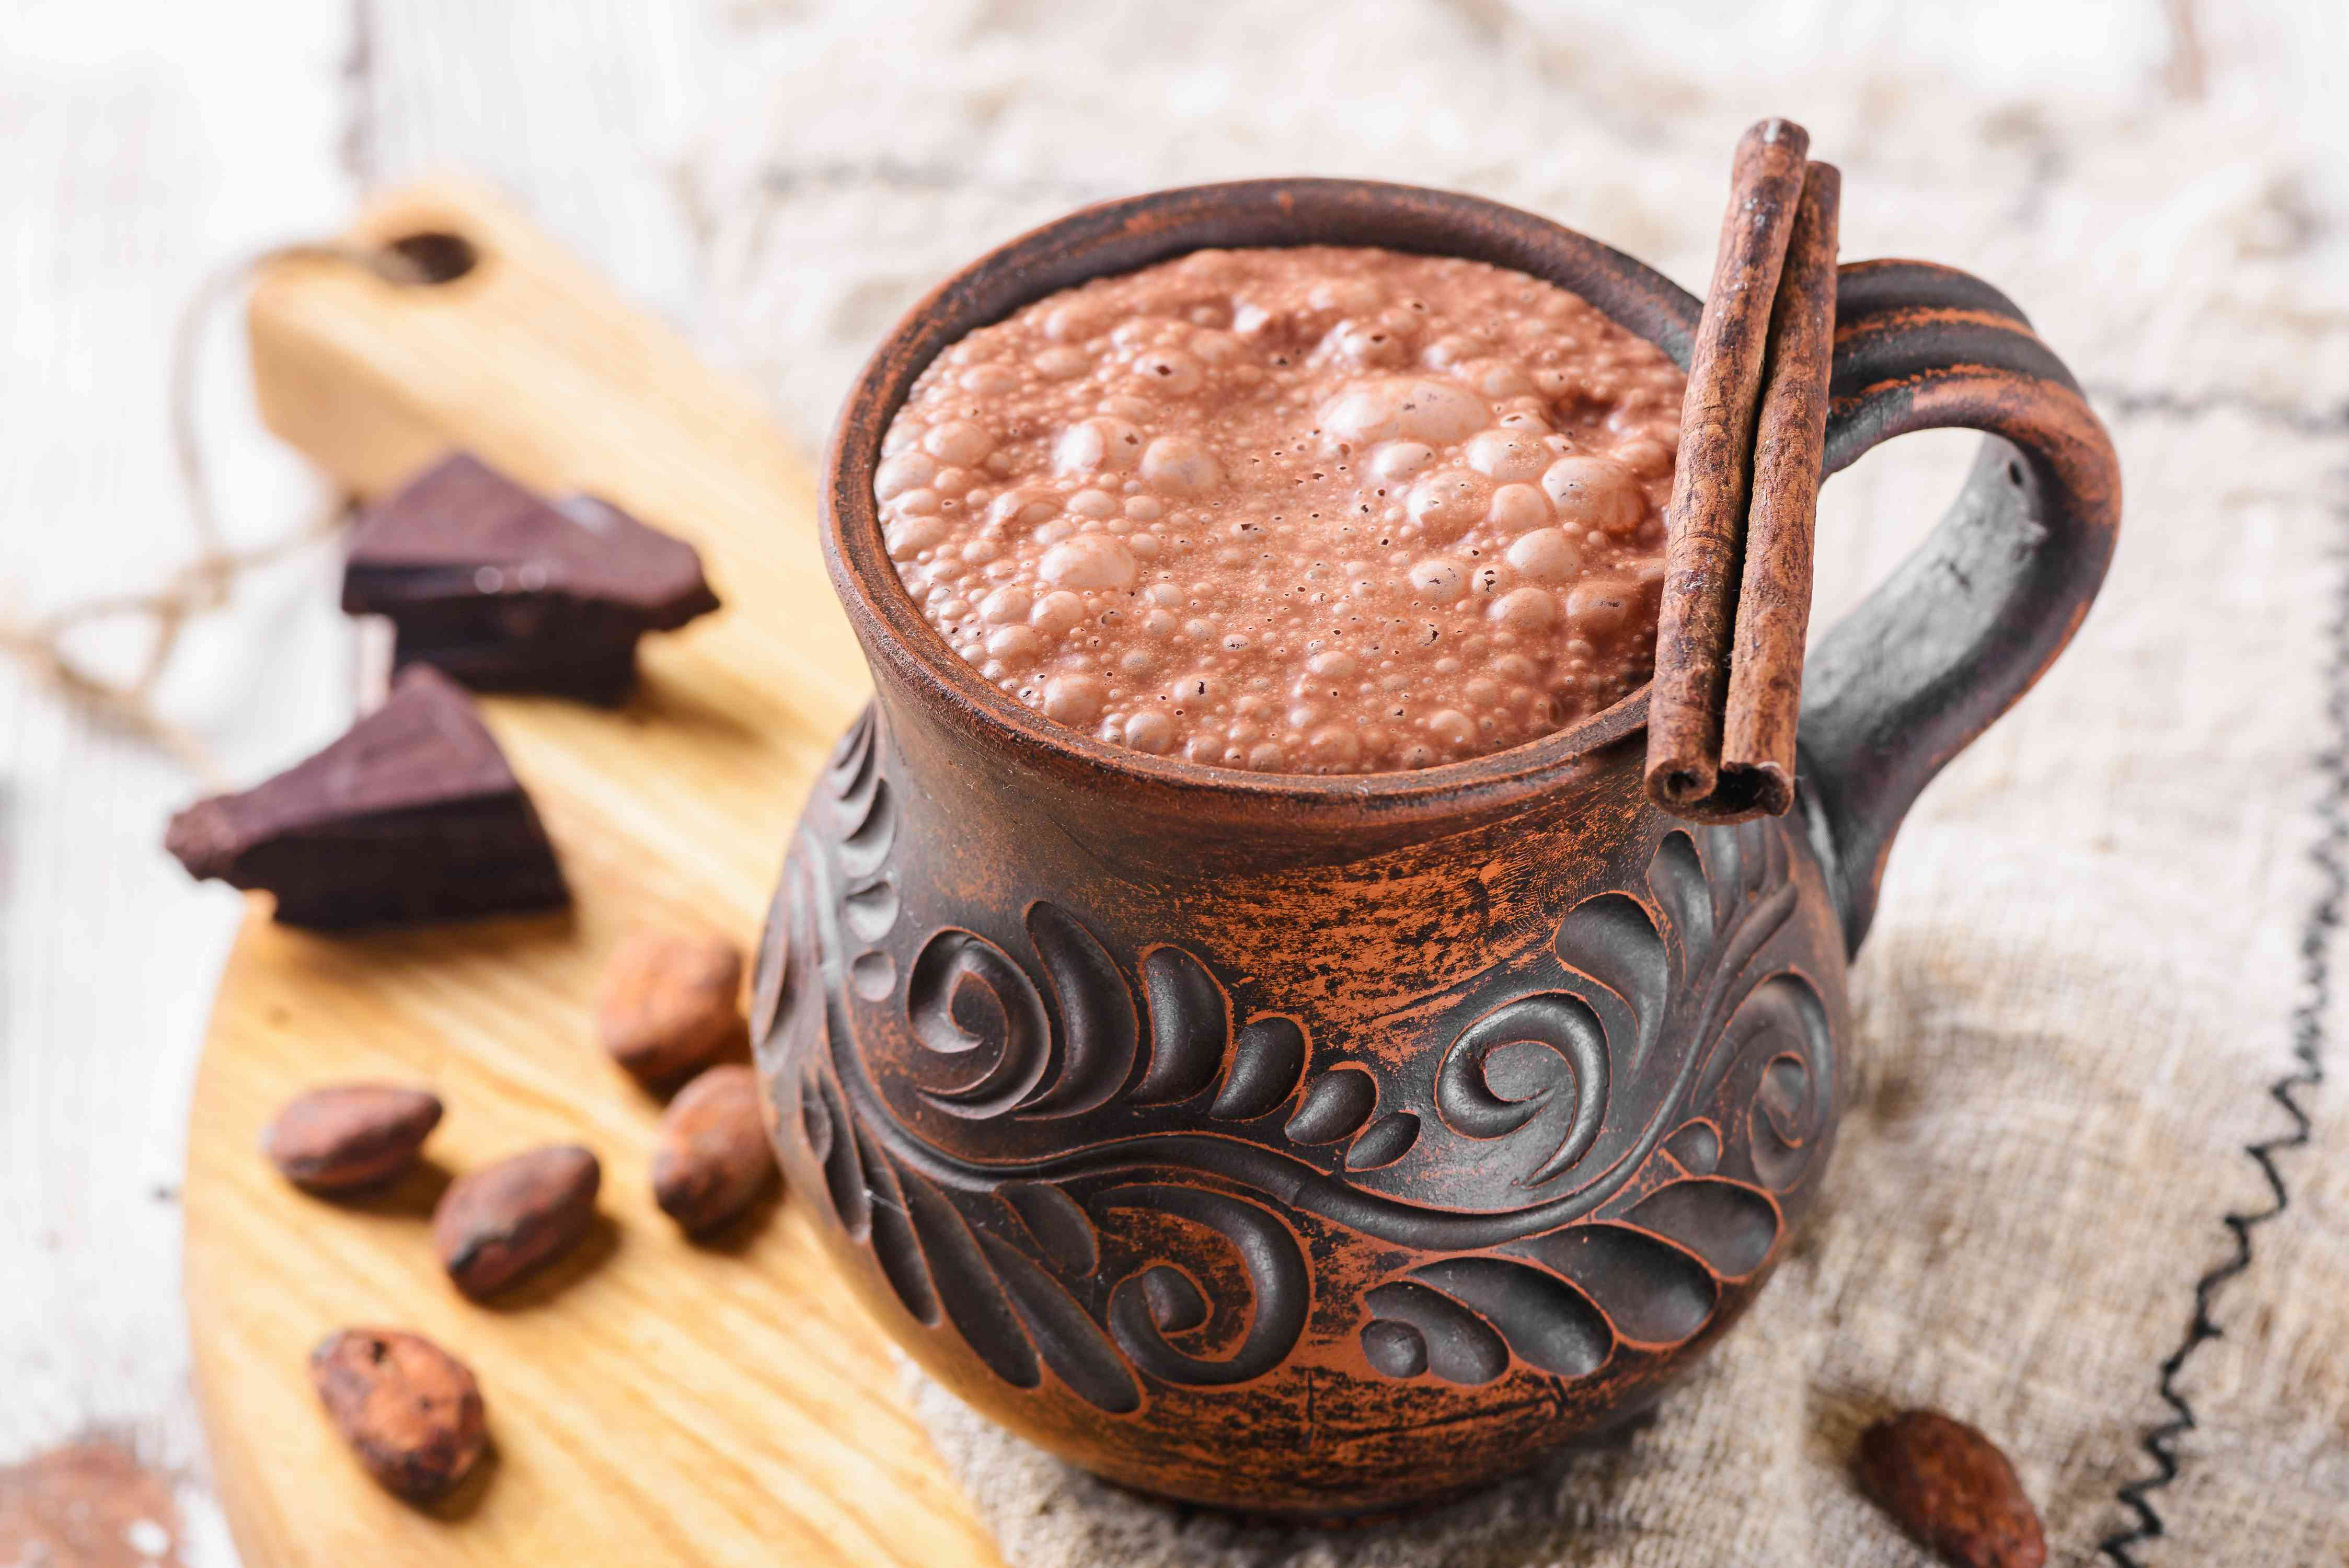 Authentic Mexican hot chocolate